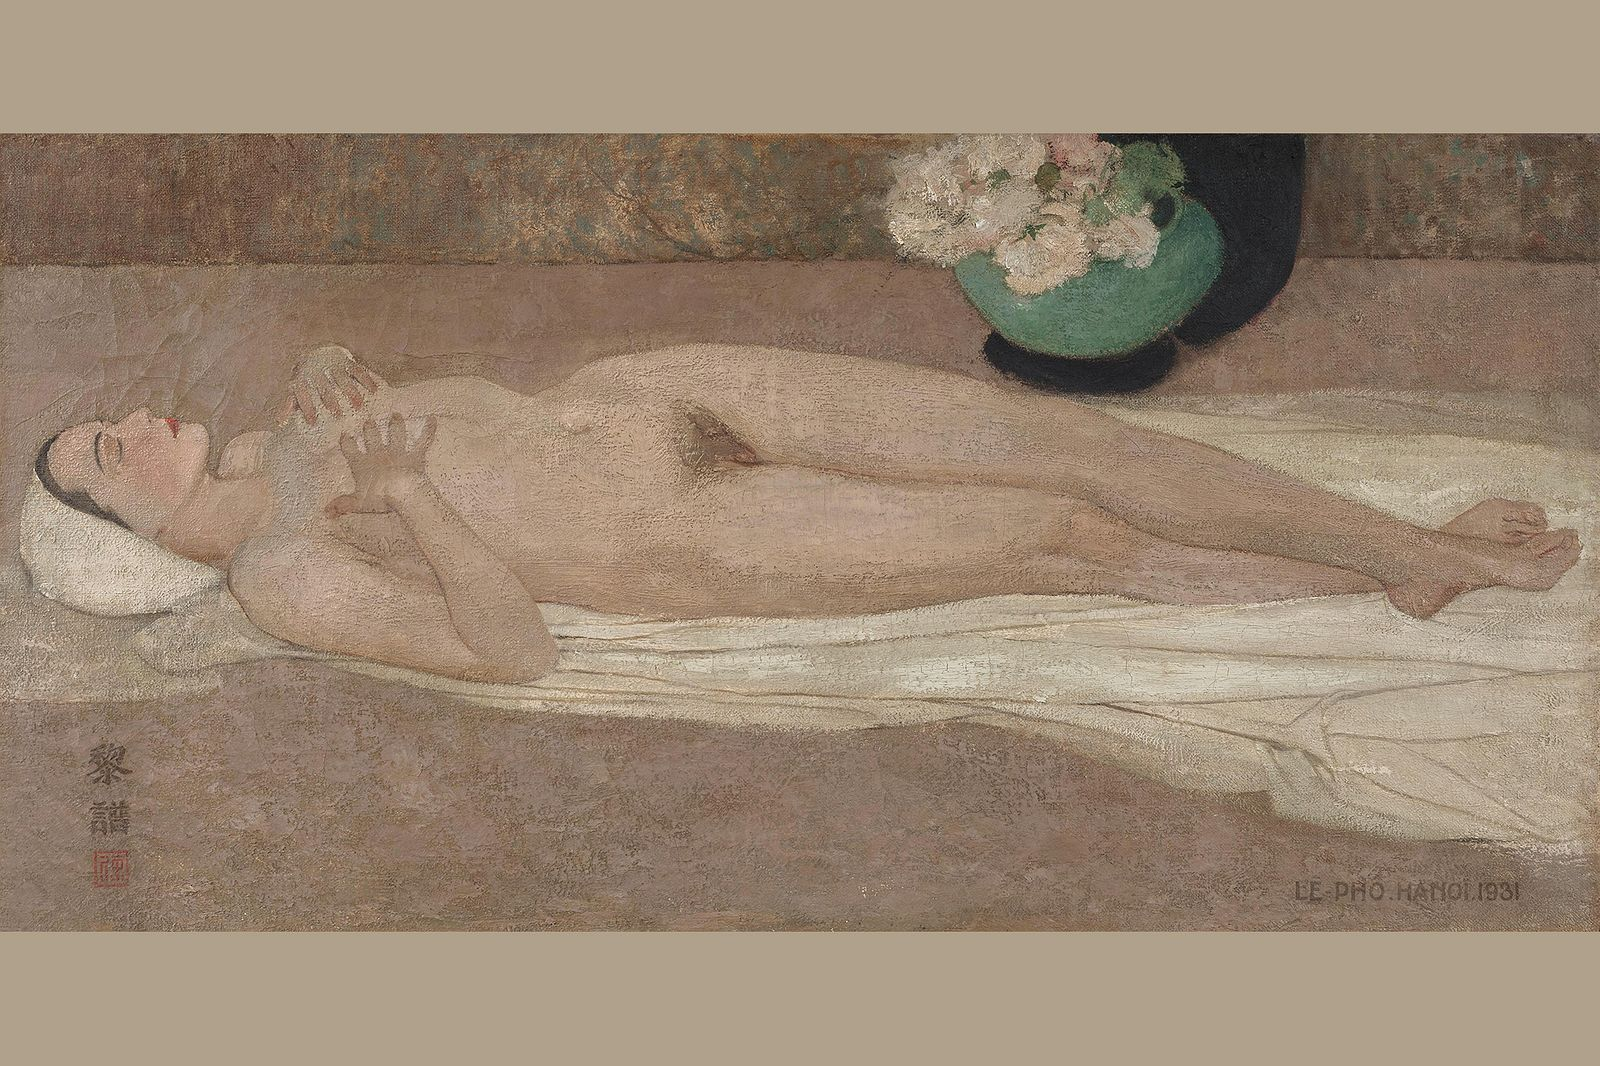 Le Pho Painting Sets Record for Most Expensive Vietnamese Art Sold